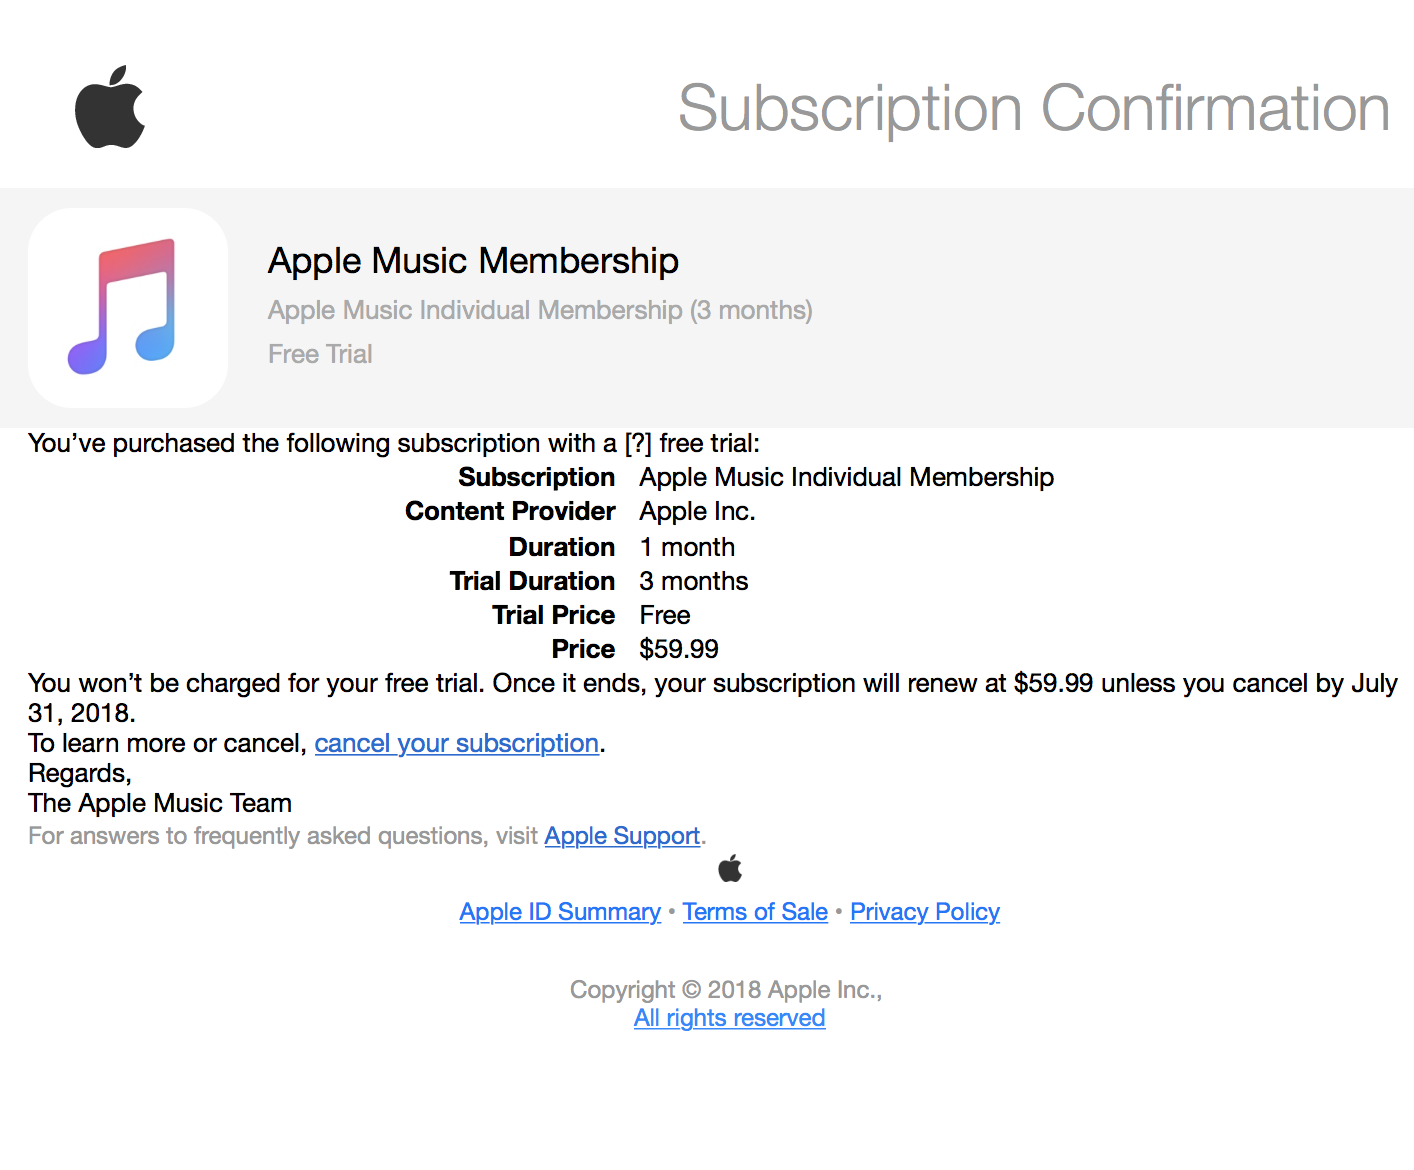 is this an apple music email scam? - Apple Community